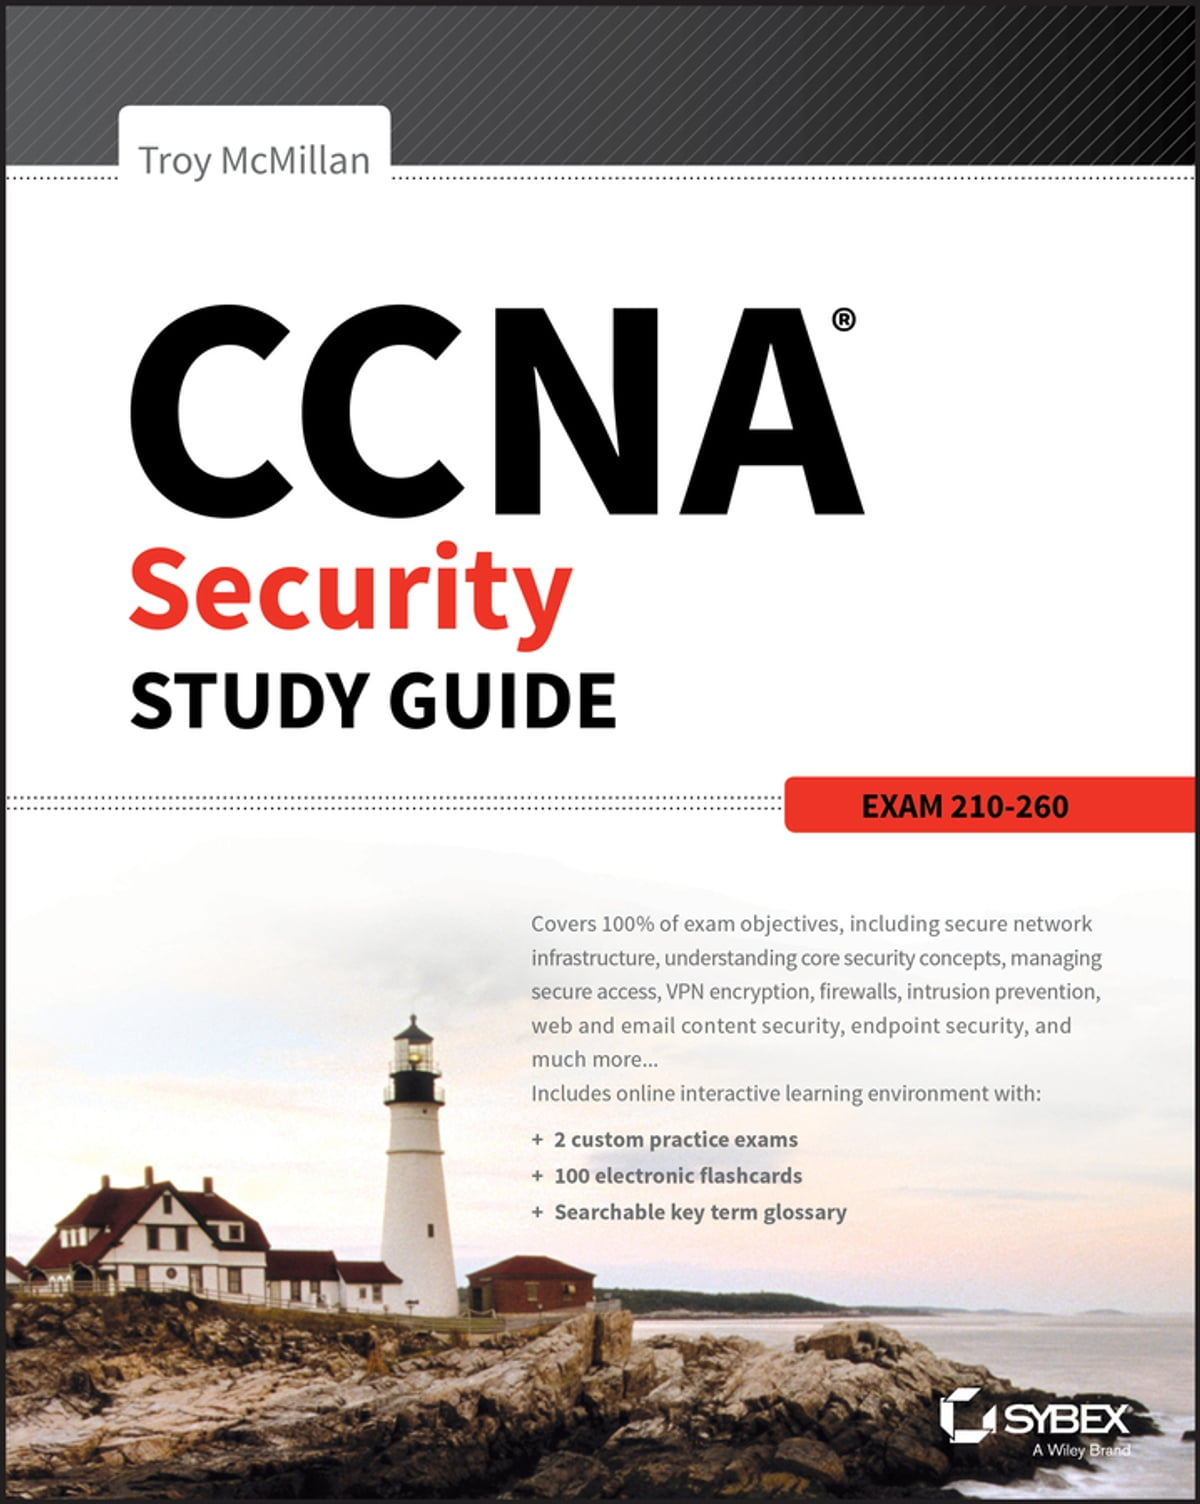 ccna security pdf free ebook download